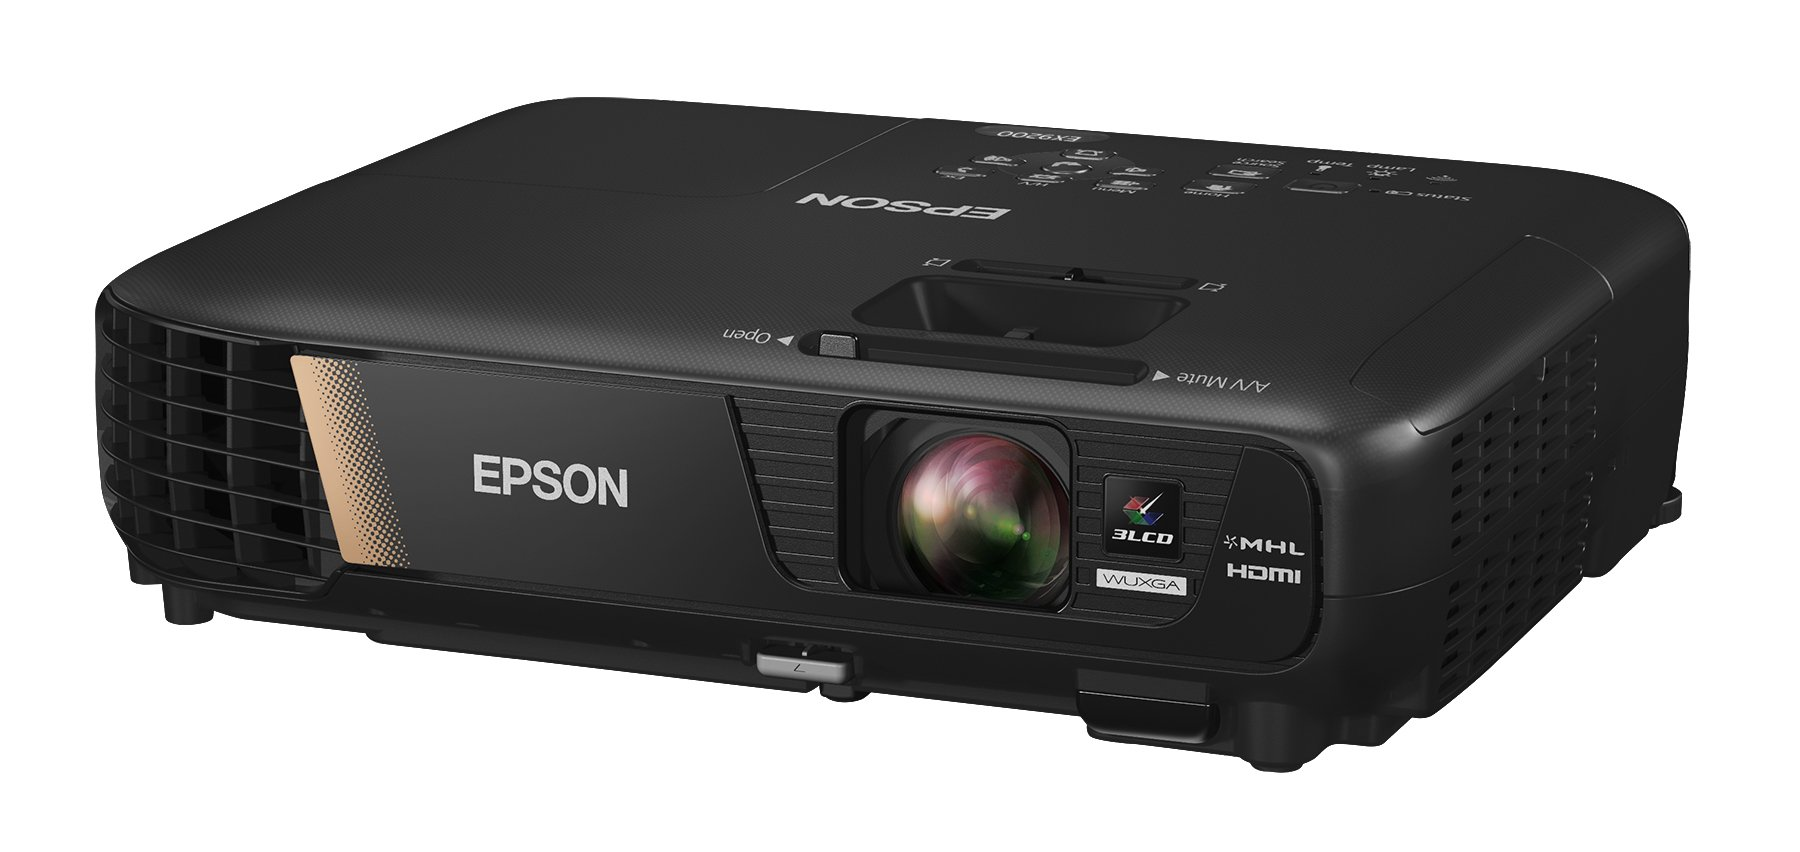 Epson EX9200 Pro WUXGA 3LCD Projector Pro Wireless, Full HD, 3200 Lumens Color Brightness by Epson